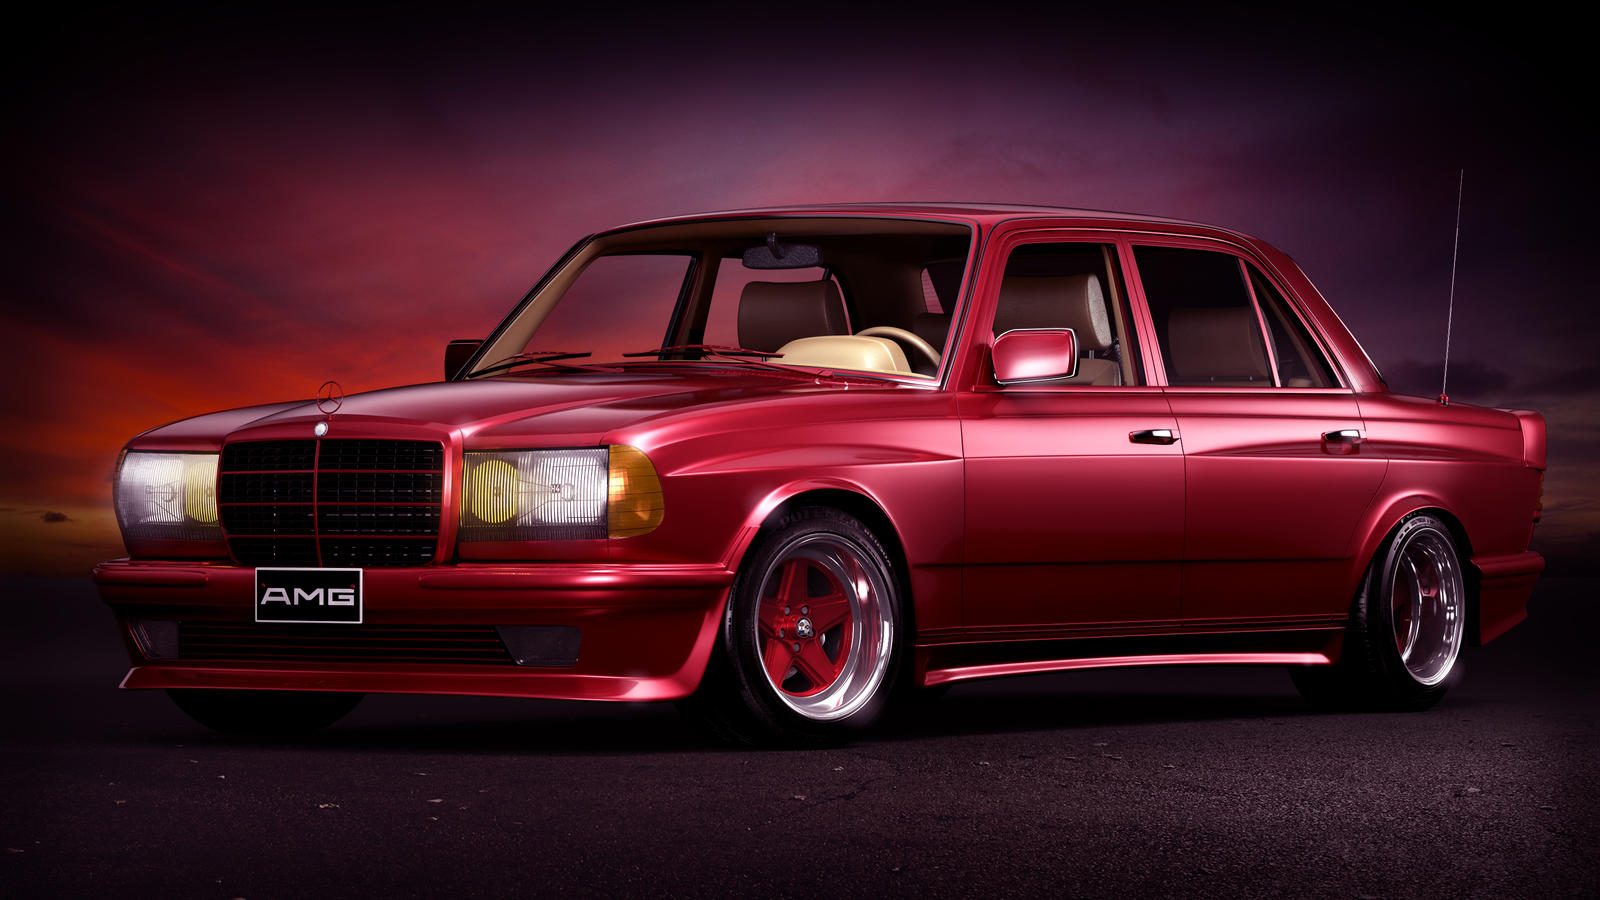 1984 mercedes benz w123 6 0 amg wide body by splicer436 on for Mercedes benz body shop miami